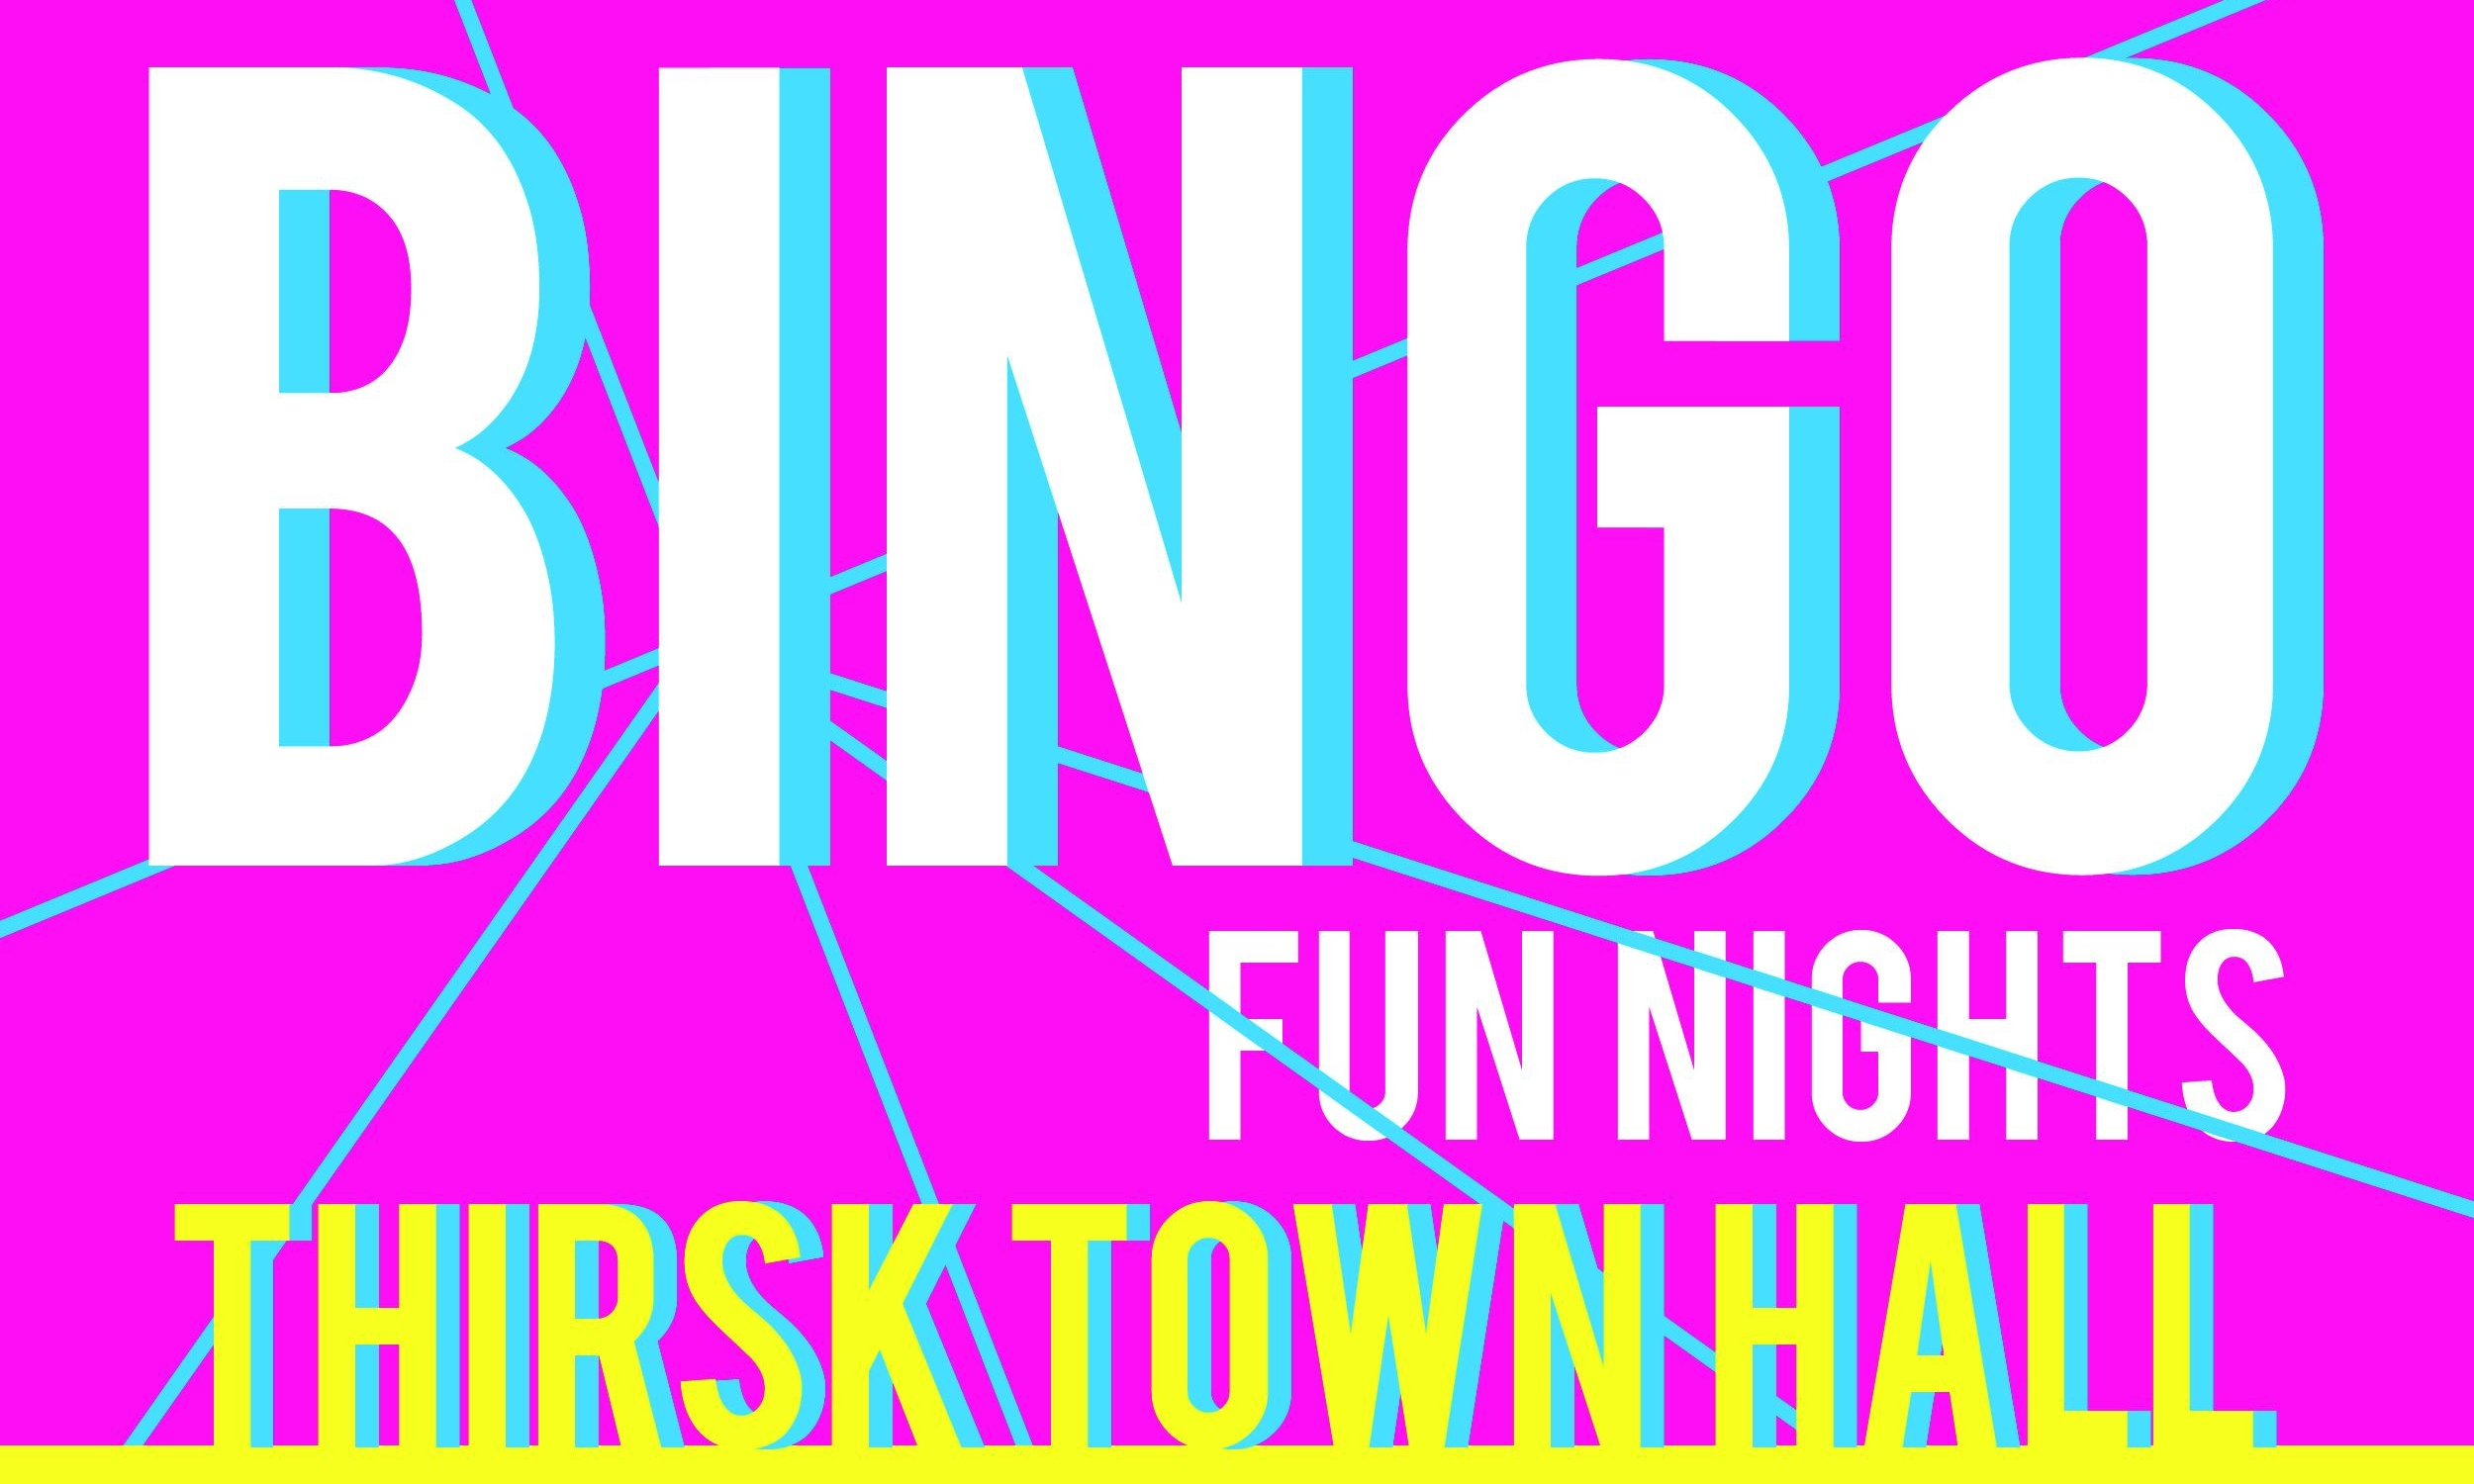 LOT 6   A night at the bingo You and 3 friends can enjoy a night at the bingo with all your tickets and a bottle of fizz taken care of at Thirsk town hall.. Prize donated by Thirsk Christmas Lights team .    Current Bid £30